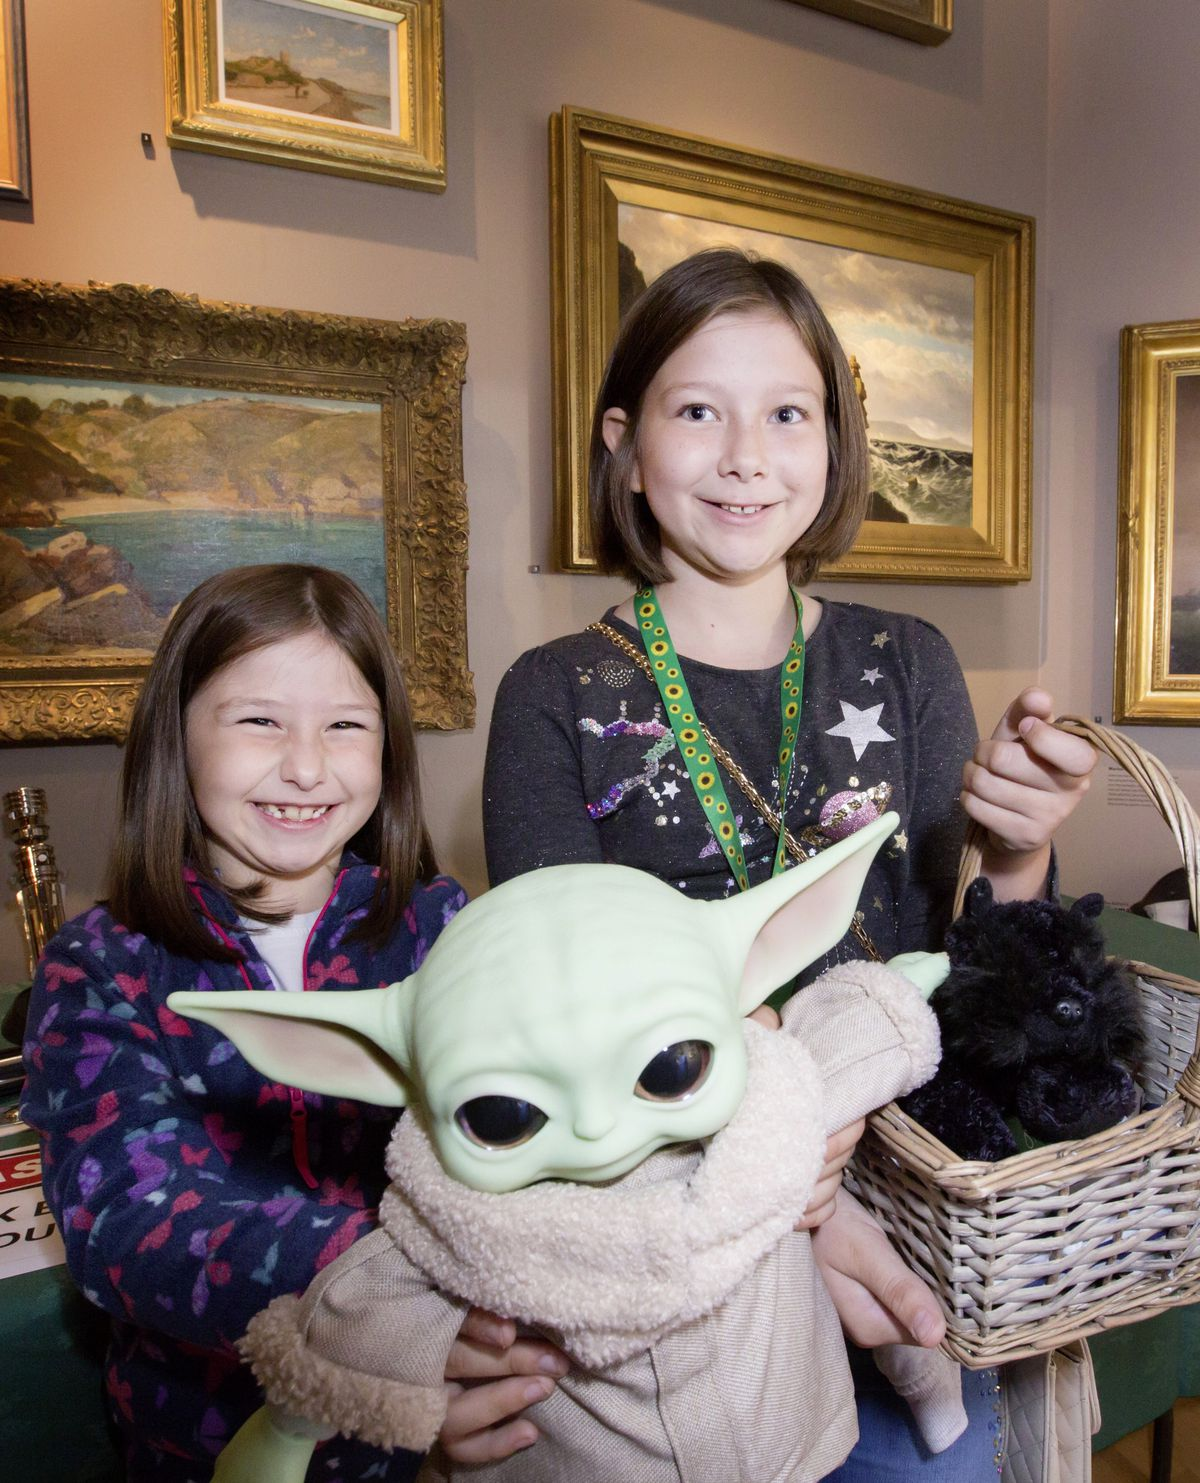 Left to right: Sisters Molly, 8, and Taylor, 10, Glendinning with baby Yoda. (28734604)